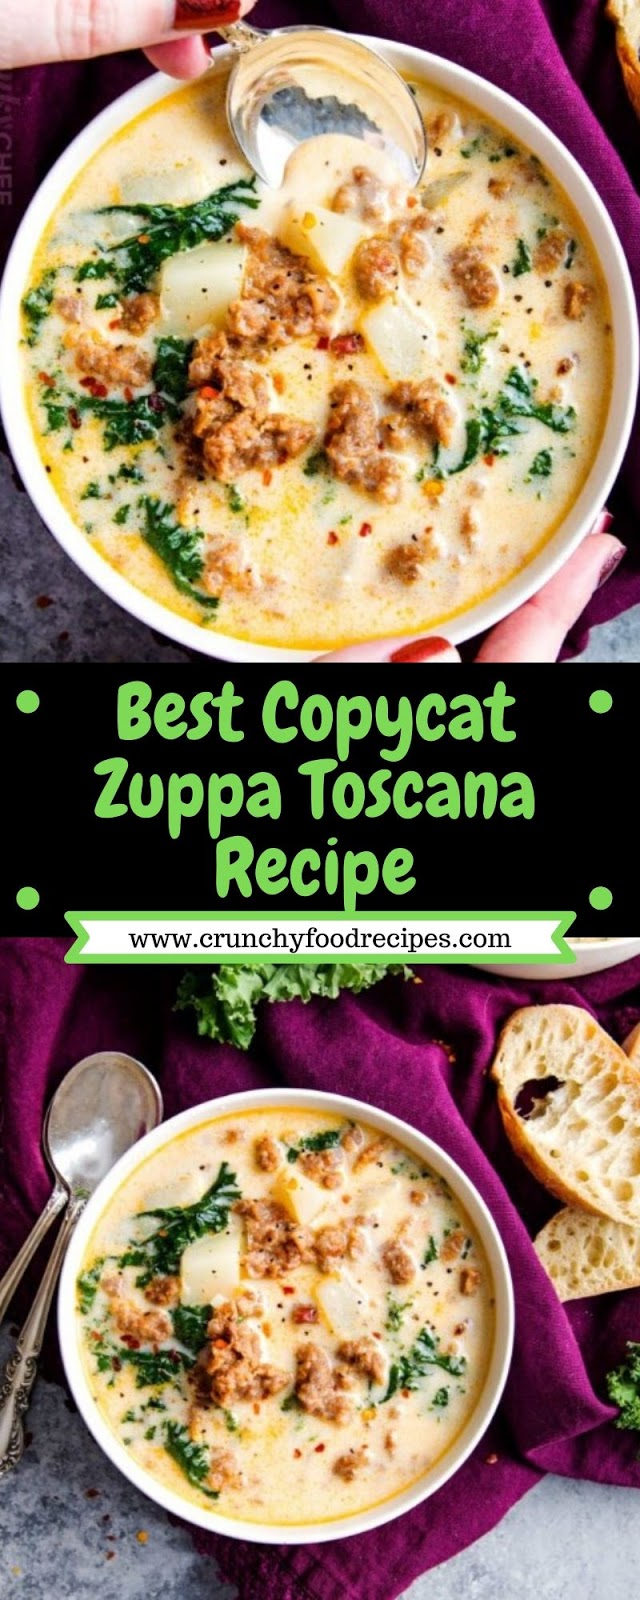 Best Copycat Zuppa Toscana Recipe